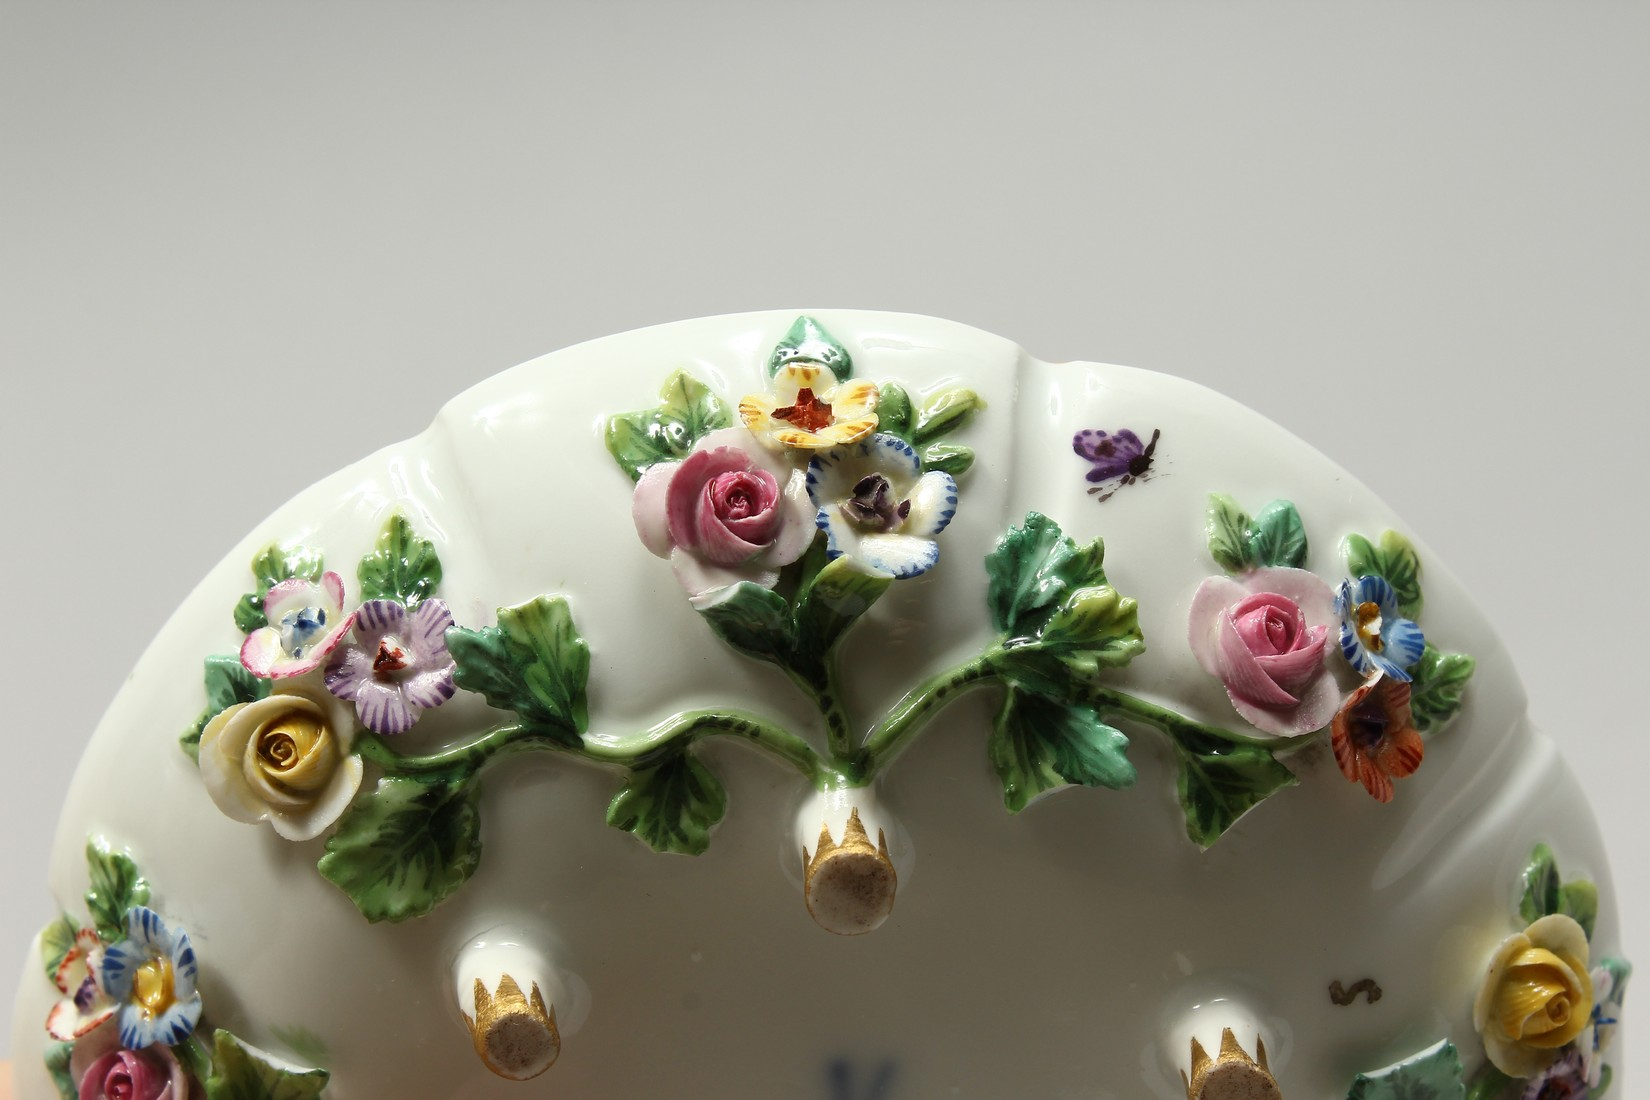 TWO MEISSEN PORCELAIN CUPS AND SAUCERS AND A SAUCER, encrusted with flowers and painted with - Image 13 of 16